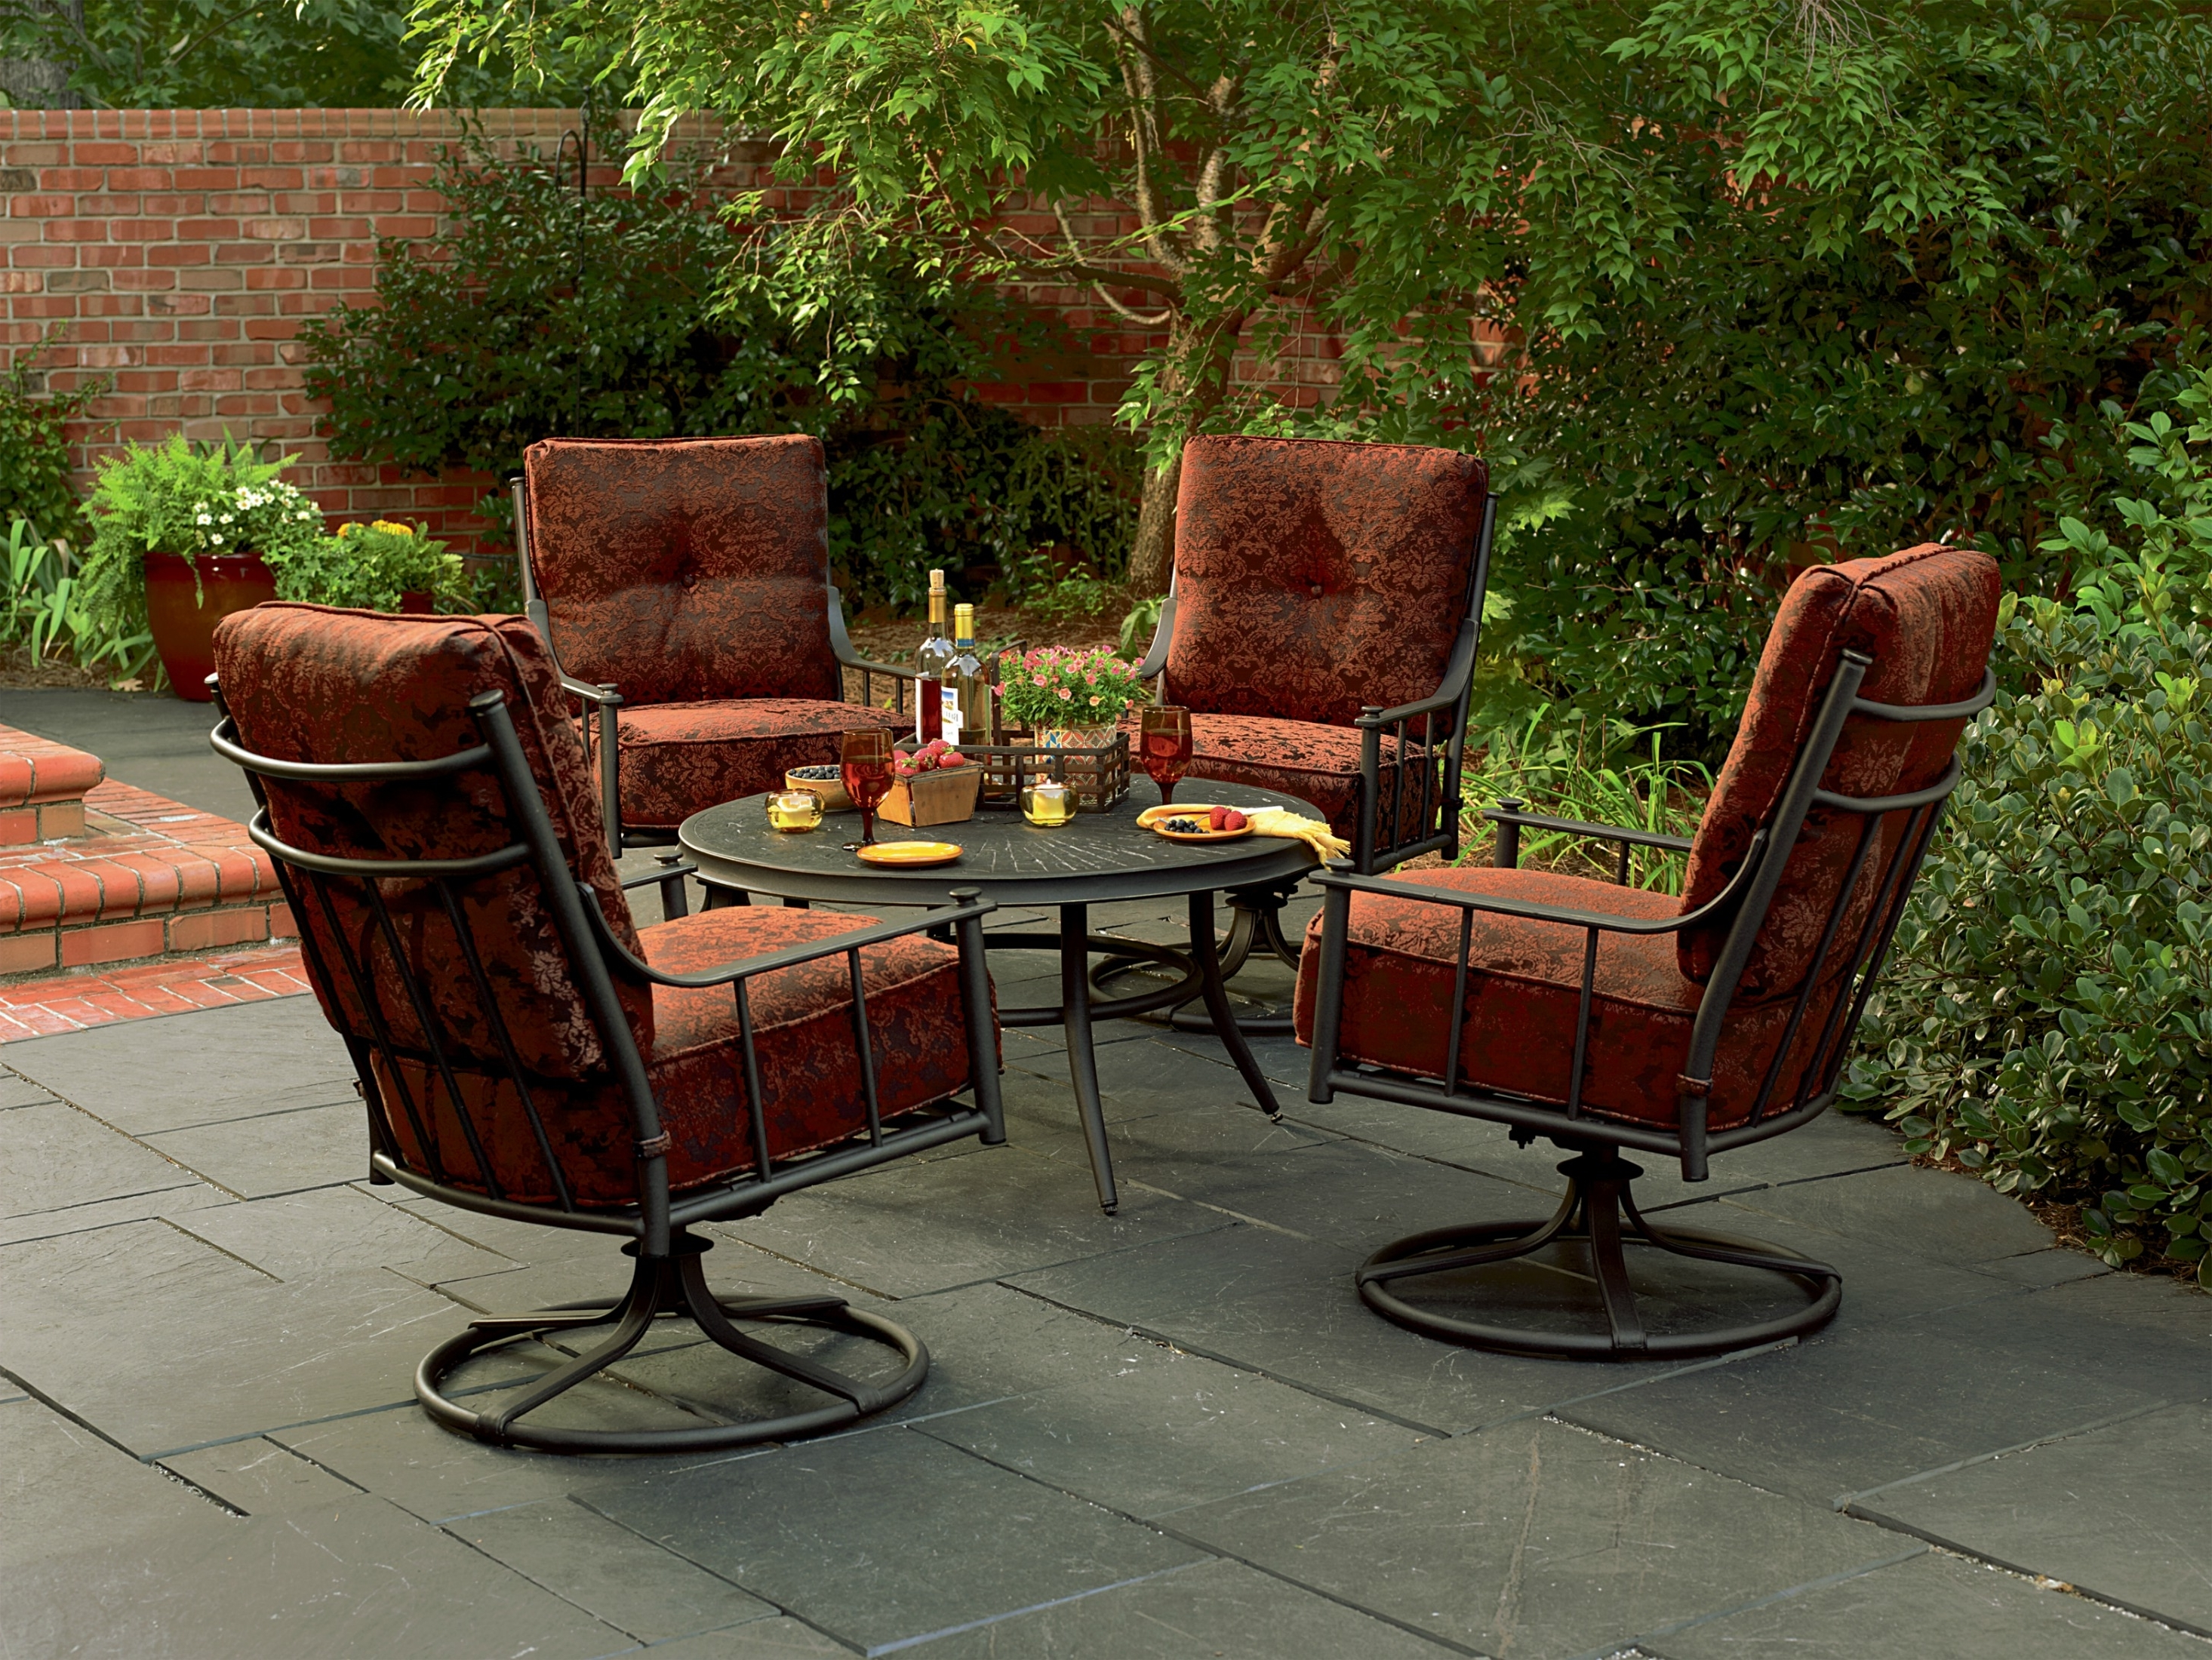 Best And Newest Patio Conversation Sets At Sears With Patio Table: Sears Patio Furniture Sets Lovely Sears Patio Table And (View 1 of 15)